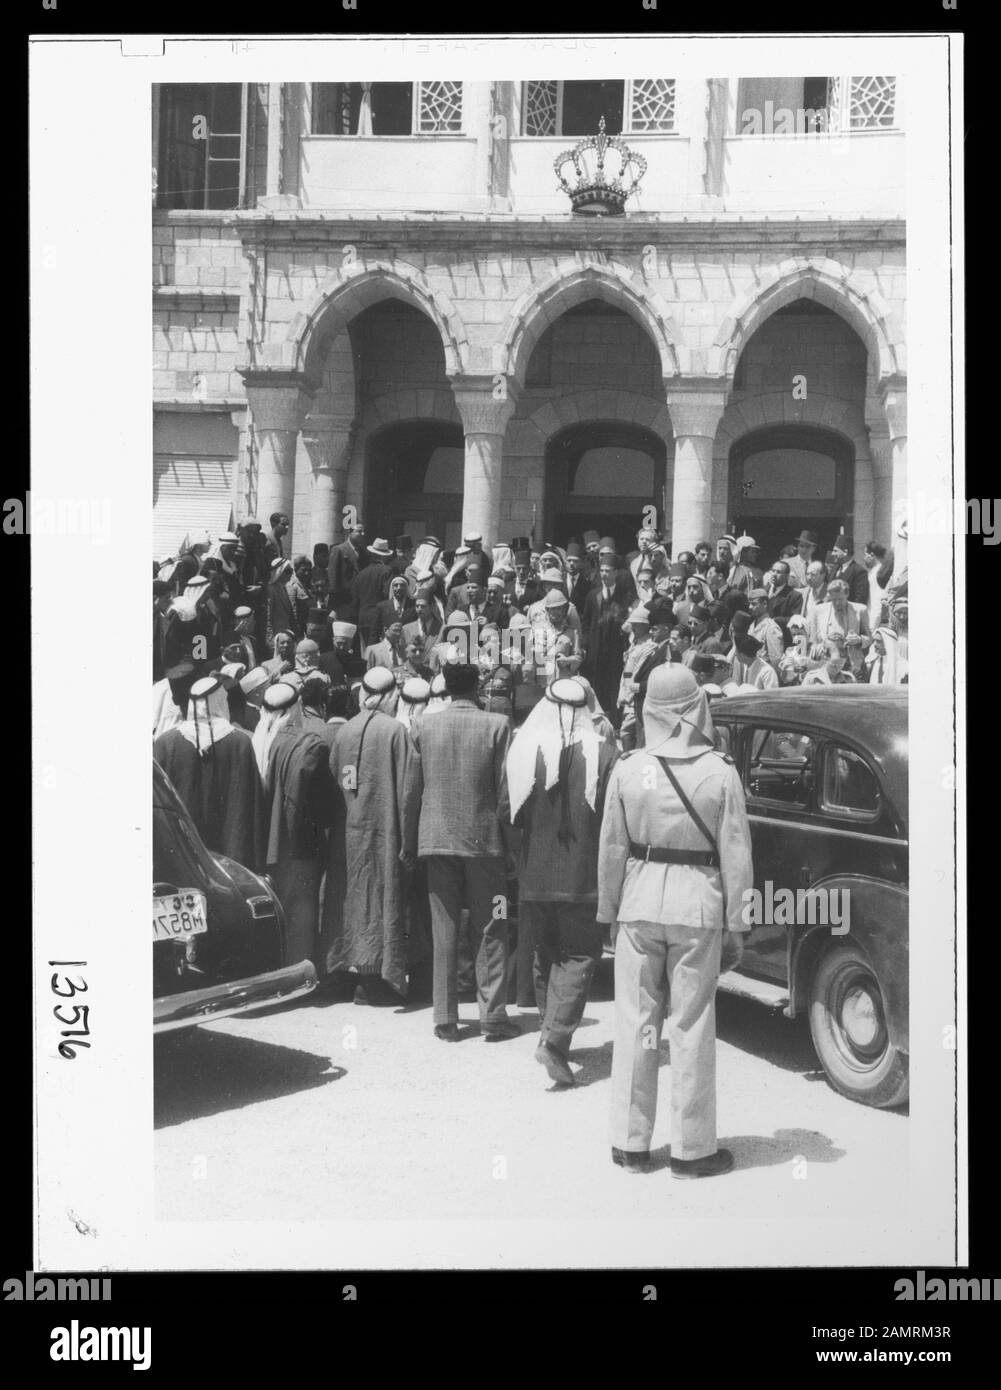 Coronation' of King Abdullah in Amman. Crowds at palace awaiting king's return from the mosque Abstract/medium: G. Eric and Edith Matson Photograph Collection  Physical description: 1 transparency:; 1946;  Catalog: https://www..gov/pictures/collection/matpc/item/mpc2005010235/PP Original url: https://hdl..gov/.pnp/matpc.14991; Matson Collection; Stock Photo